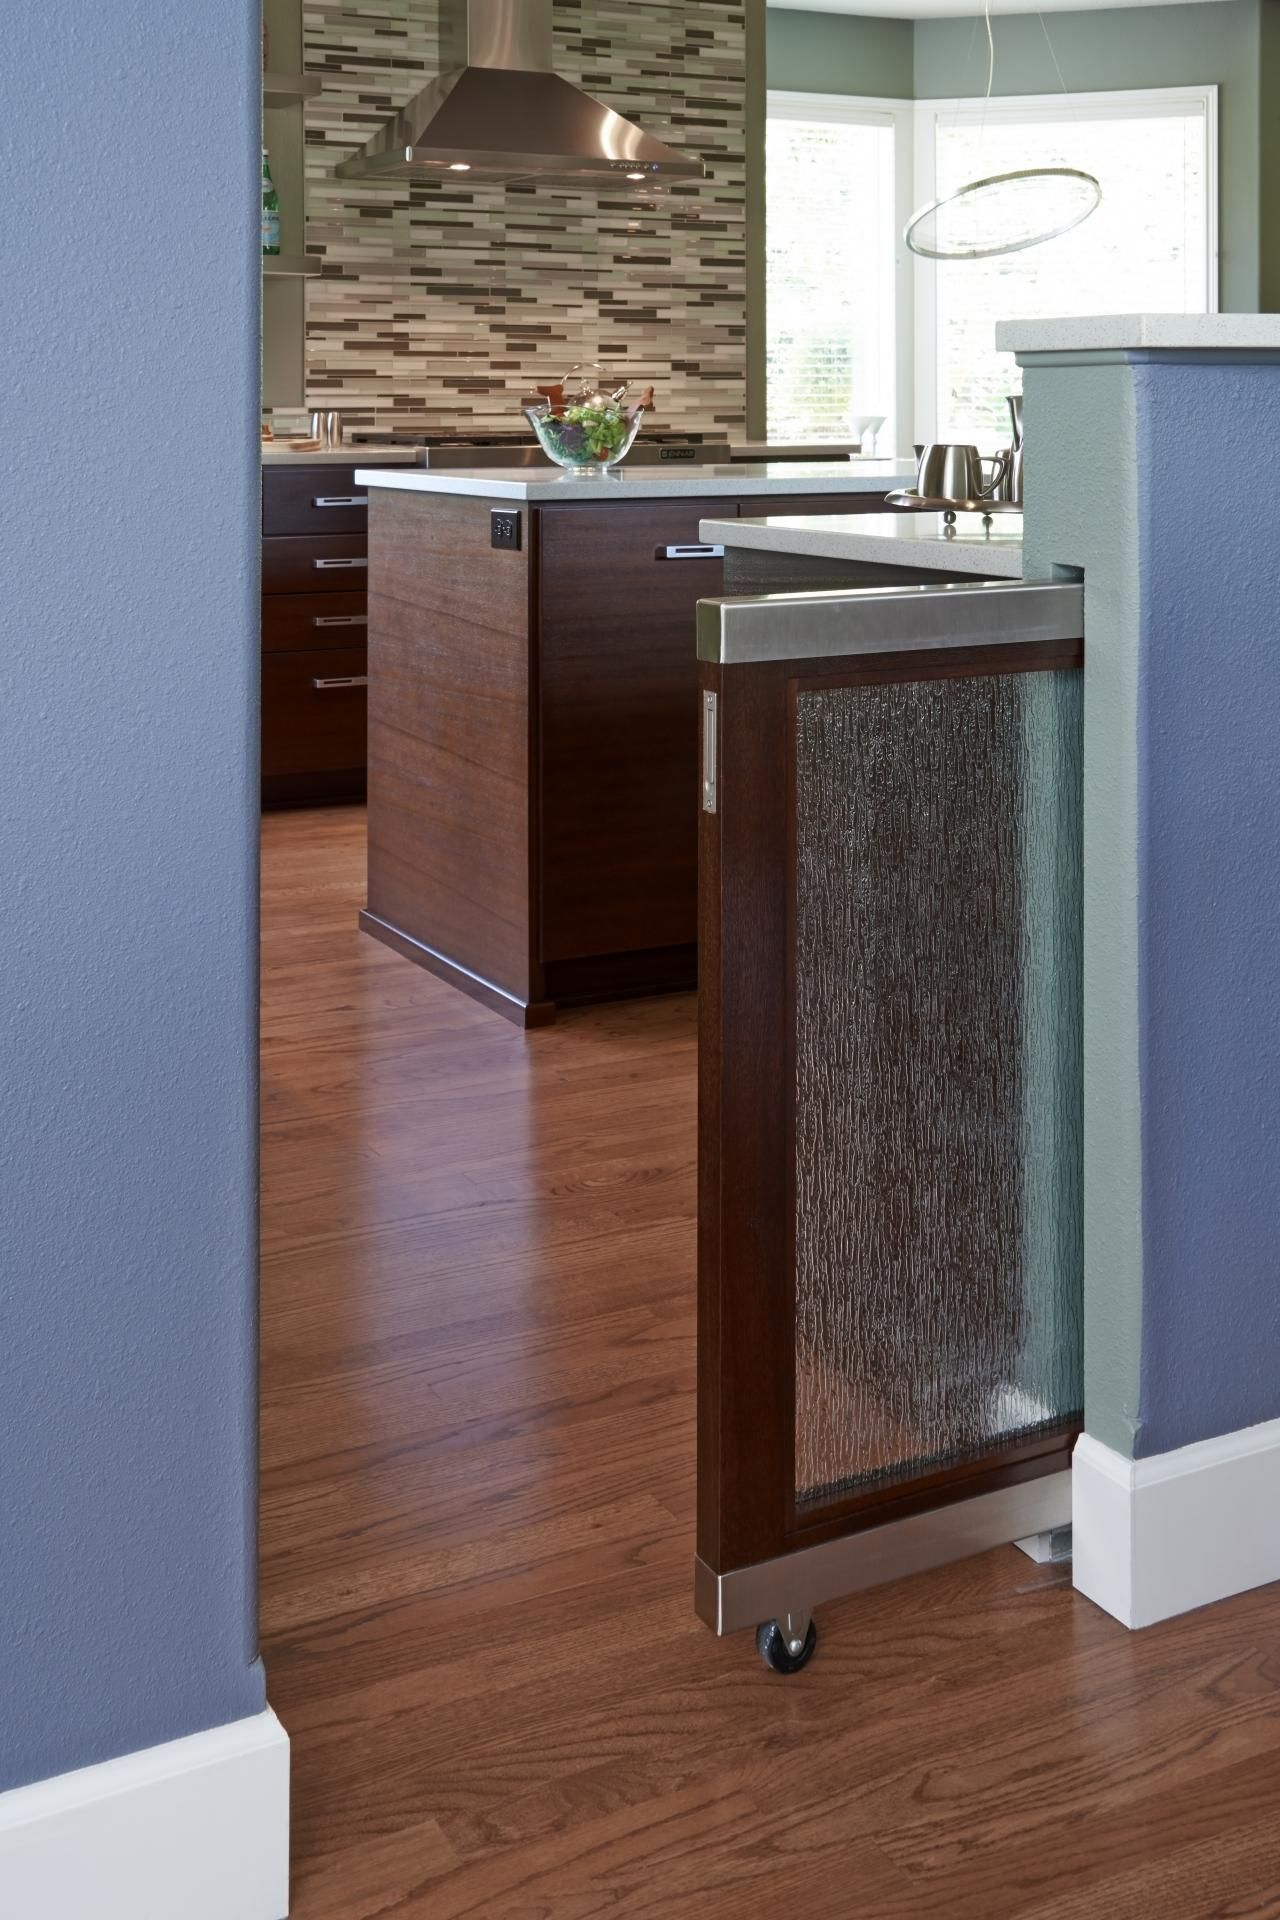 Getting That Smart Look For Your Kitchen #kitchendoors